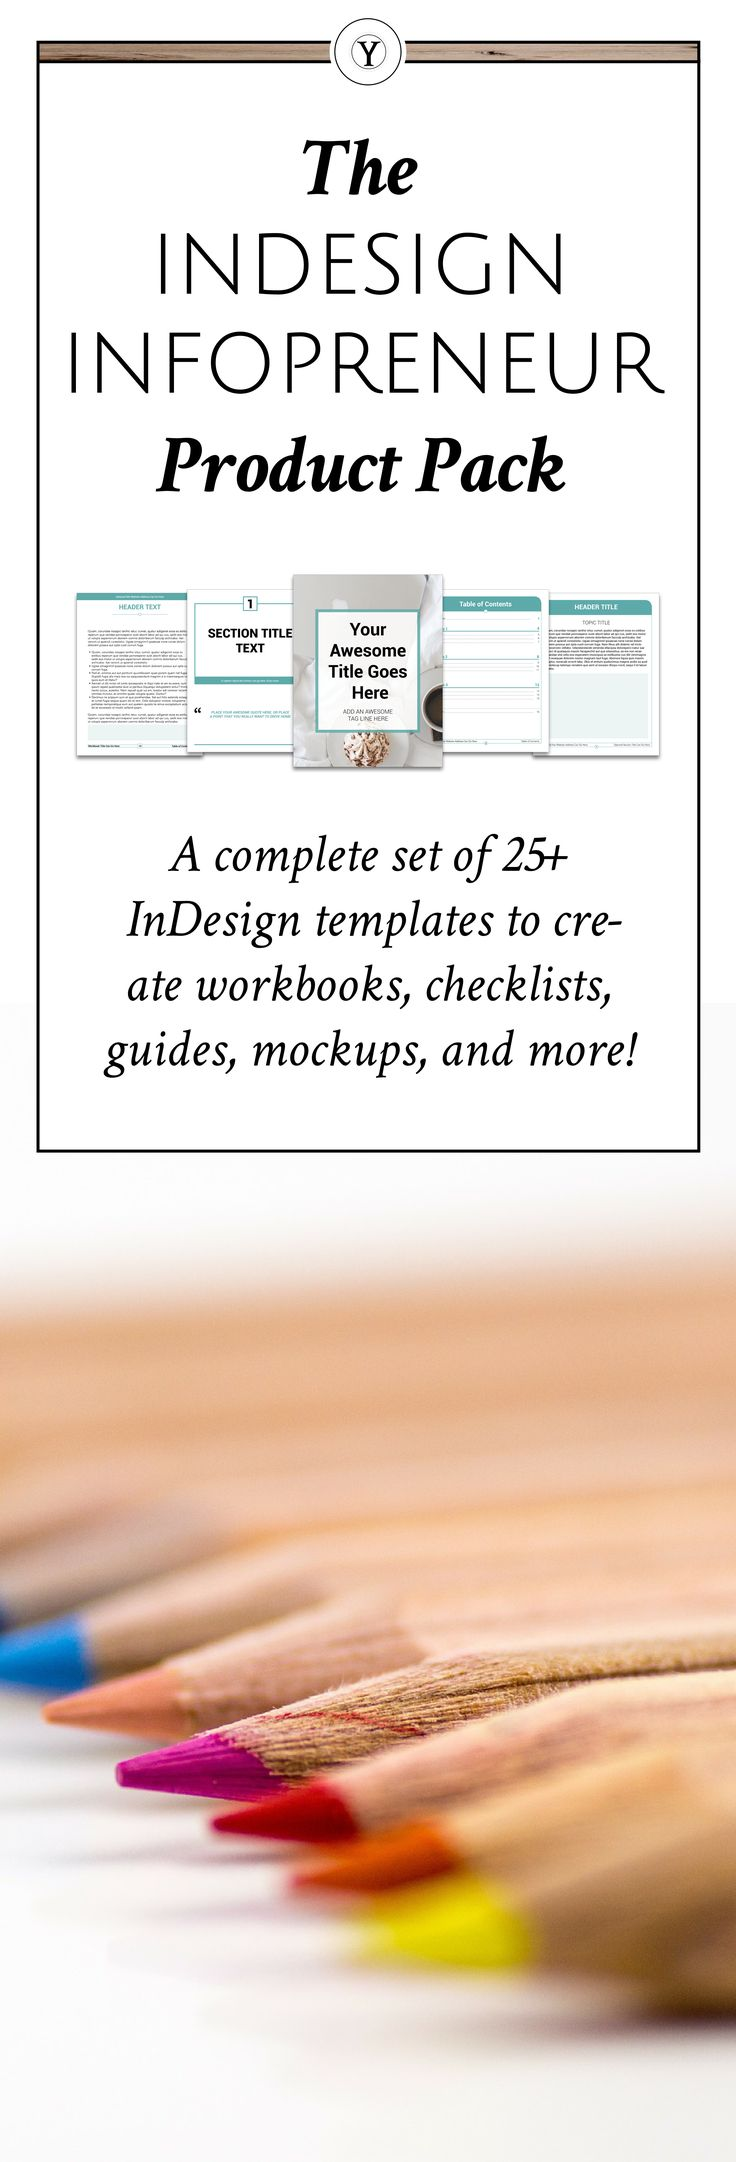 Interested in making info products but need a place to start? Then this InDesign InfoPreneur Product Pack was made for you! It included 25+ templates for workbook pages, checklists, cover pages, mockups, and even a table of contents! Perfect for creating printables for your brand or business!